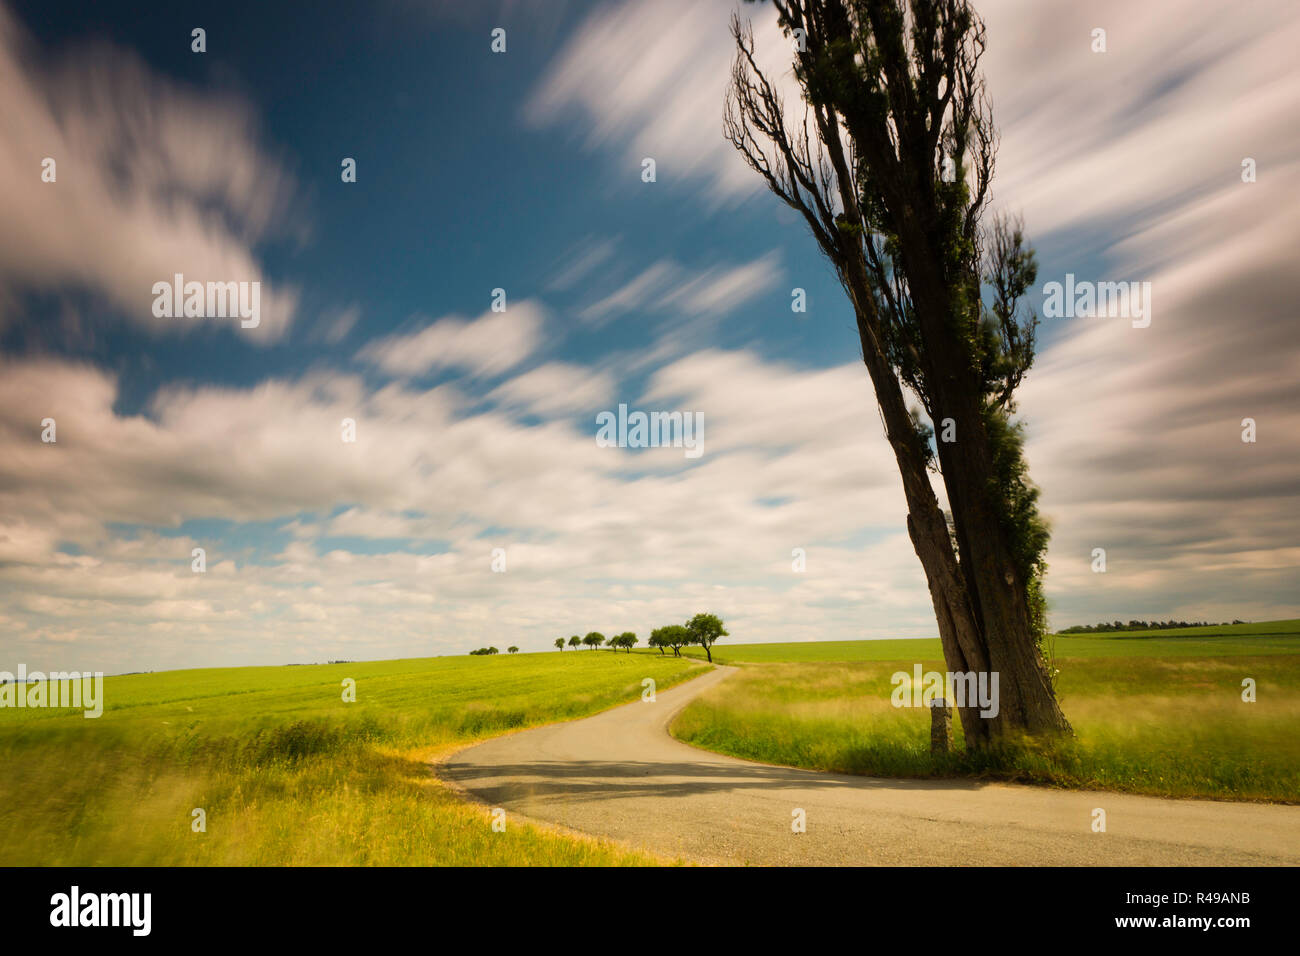 landscape in summer and clouds pulling in a long exposure on the way to the horizon Stock Photo